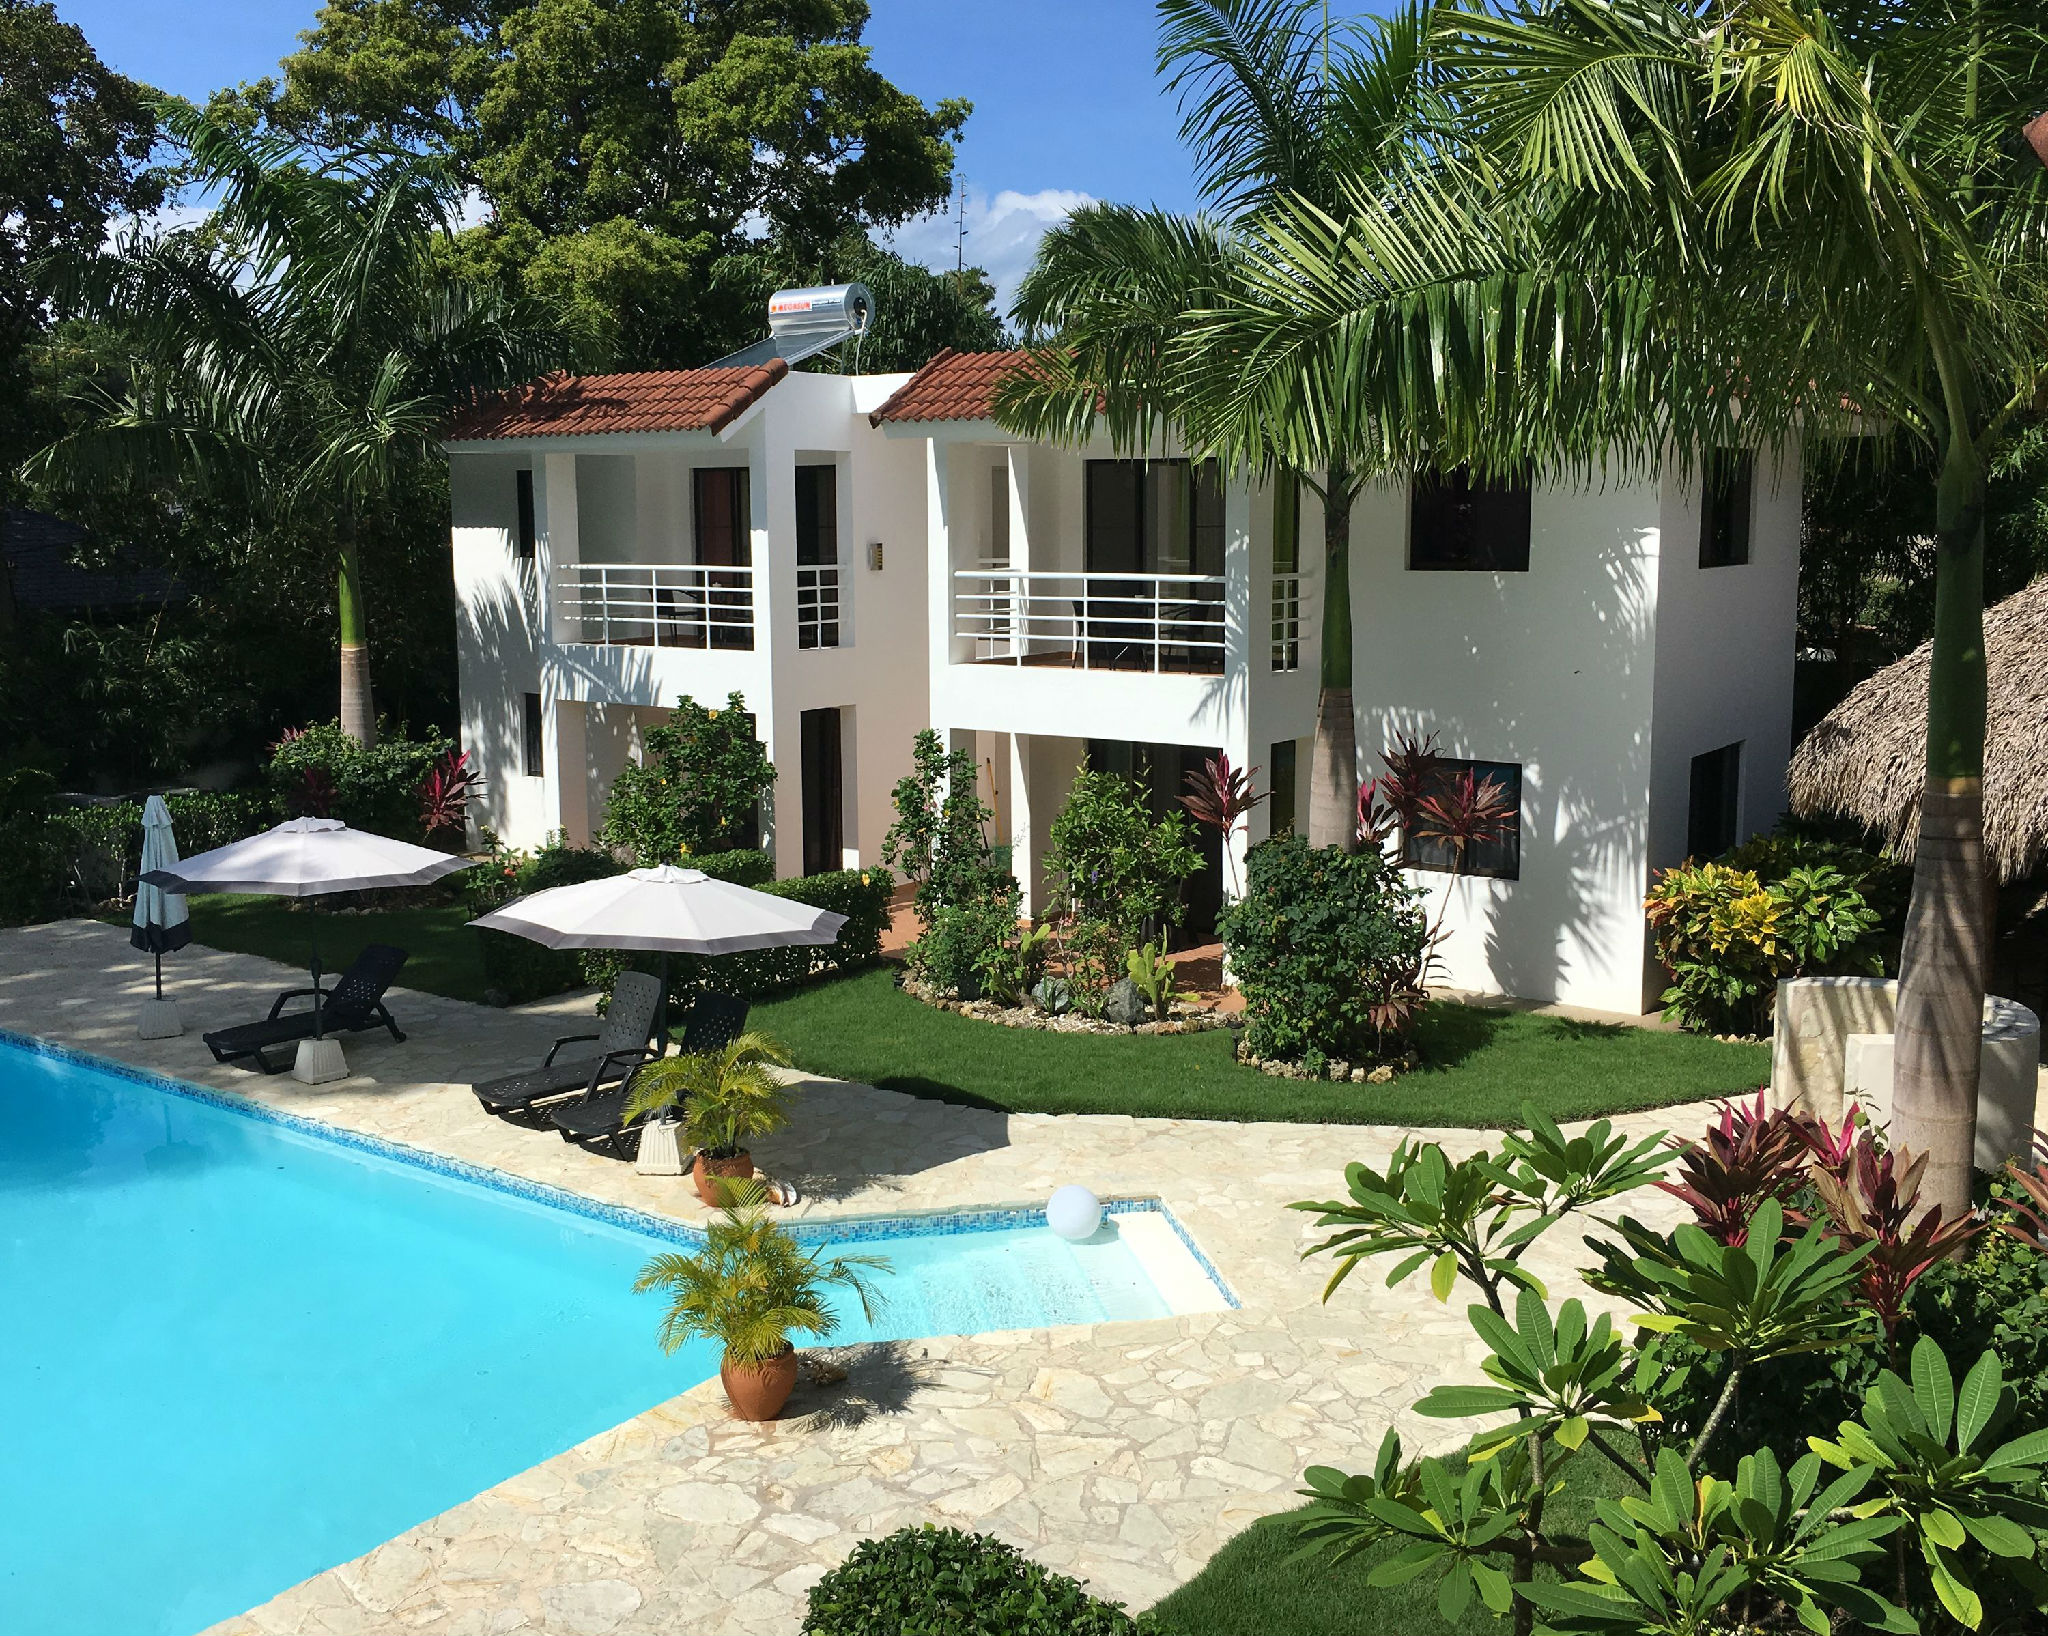 Boutique Hotel for Sale in Sosua 100 Meters to Beach